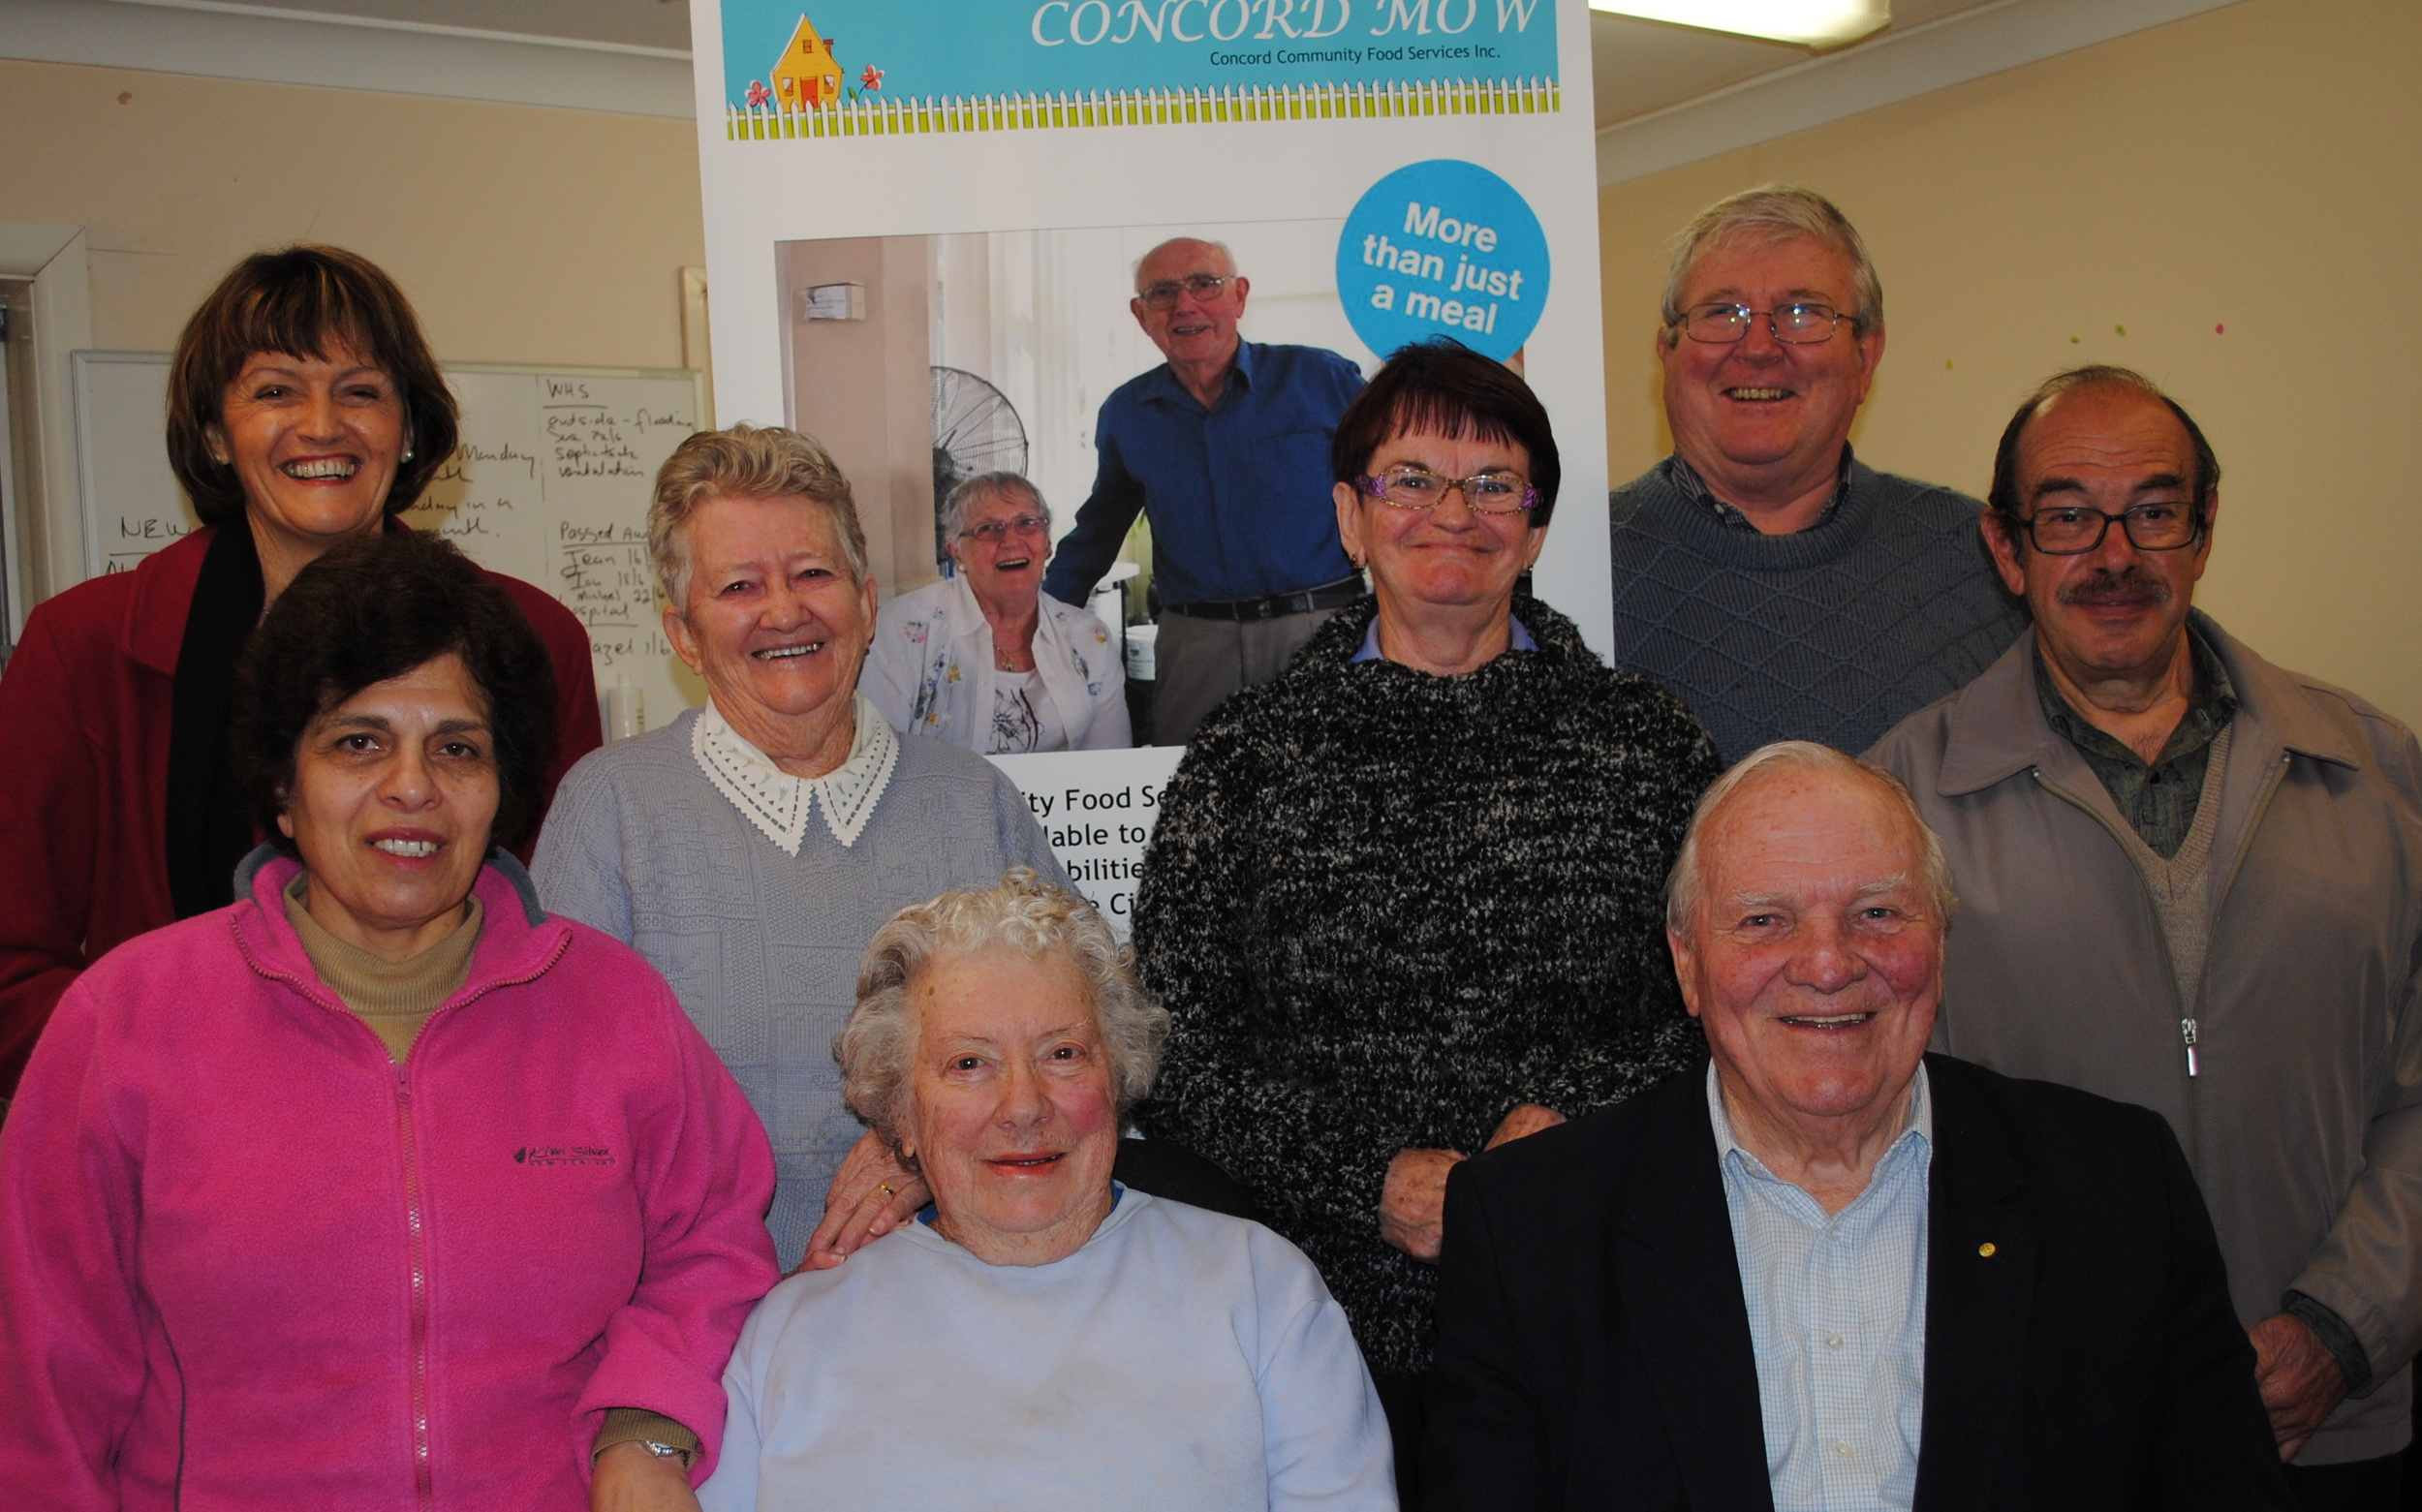 Volunteers from bottom left to right - Nella, Ruth, Alan.  Volunteers from top left to right - Dianne, Barbara, Judy, Jim and Fred.